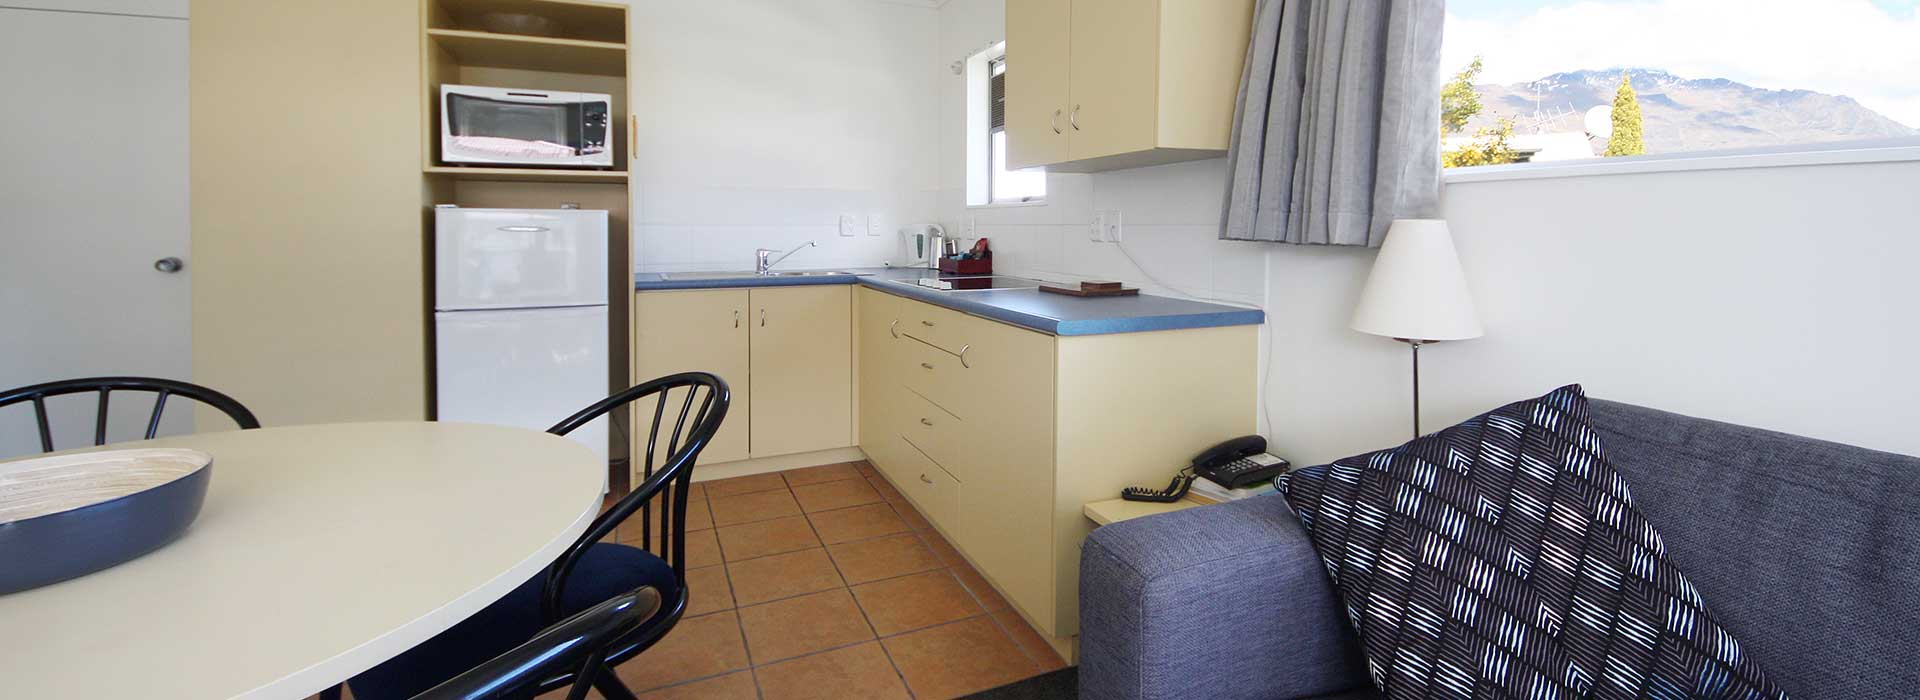 Two Bedroom Accommodation